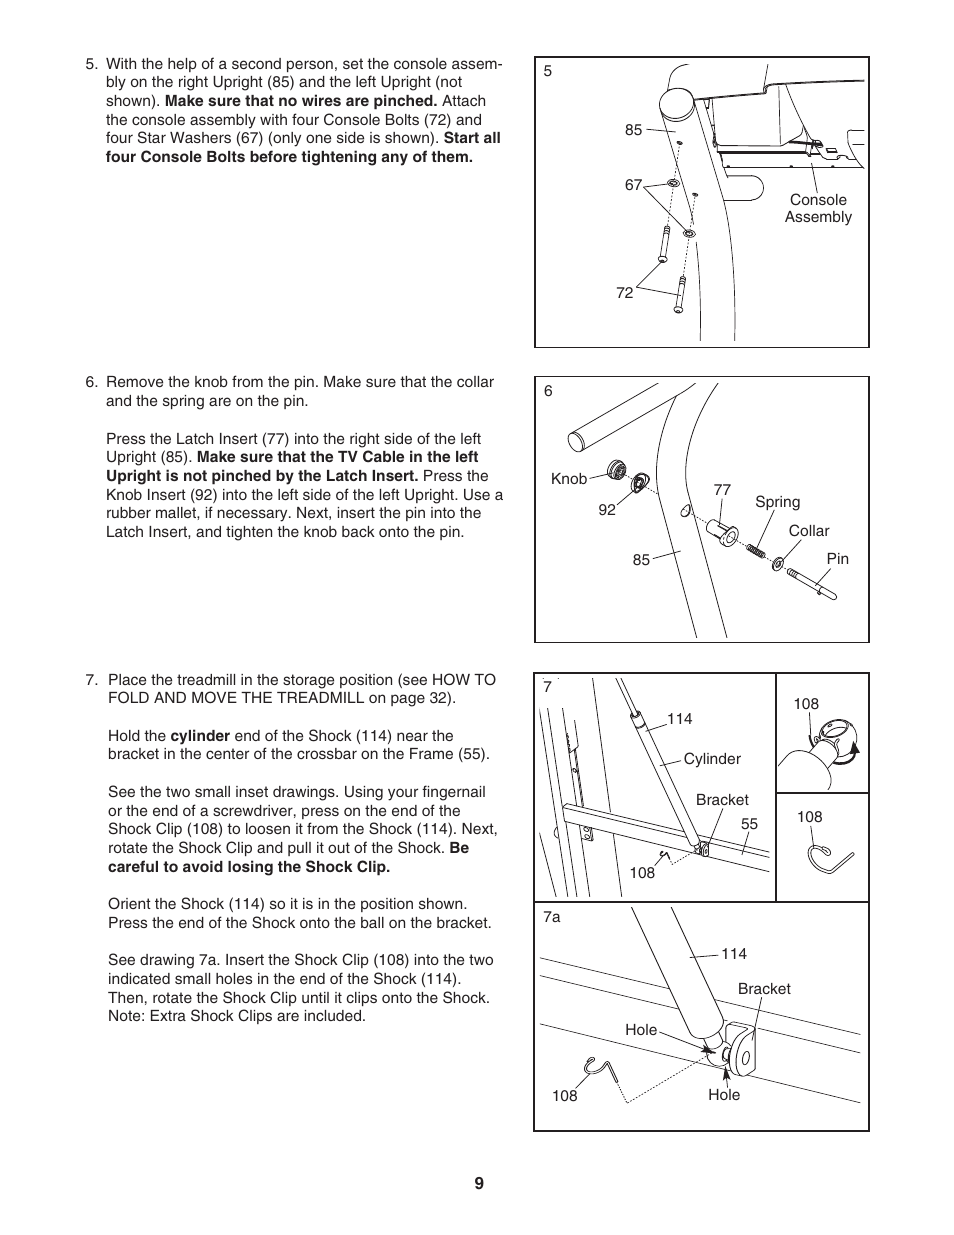 Nordictrack Viewpoint 2800 306020 User Manual Page 9 42 Wiring Diagram